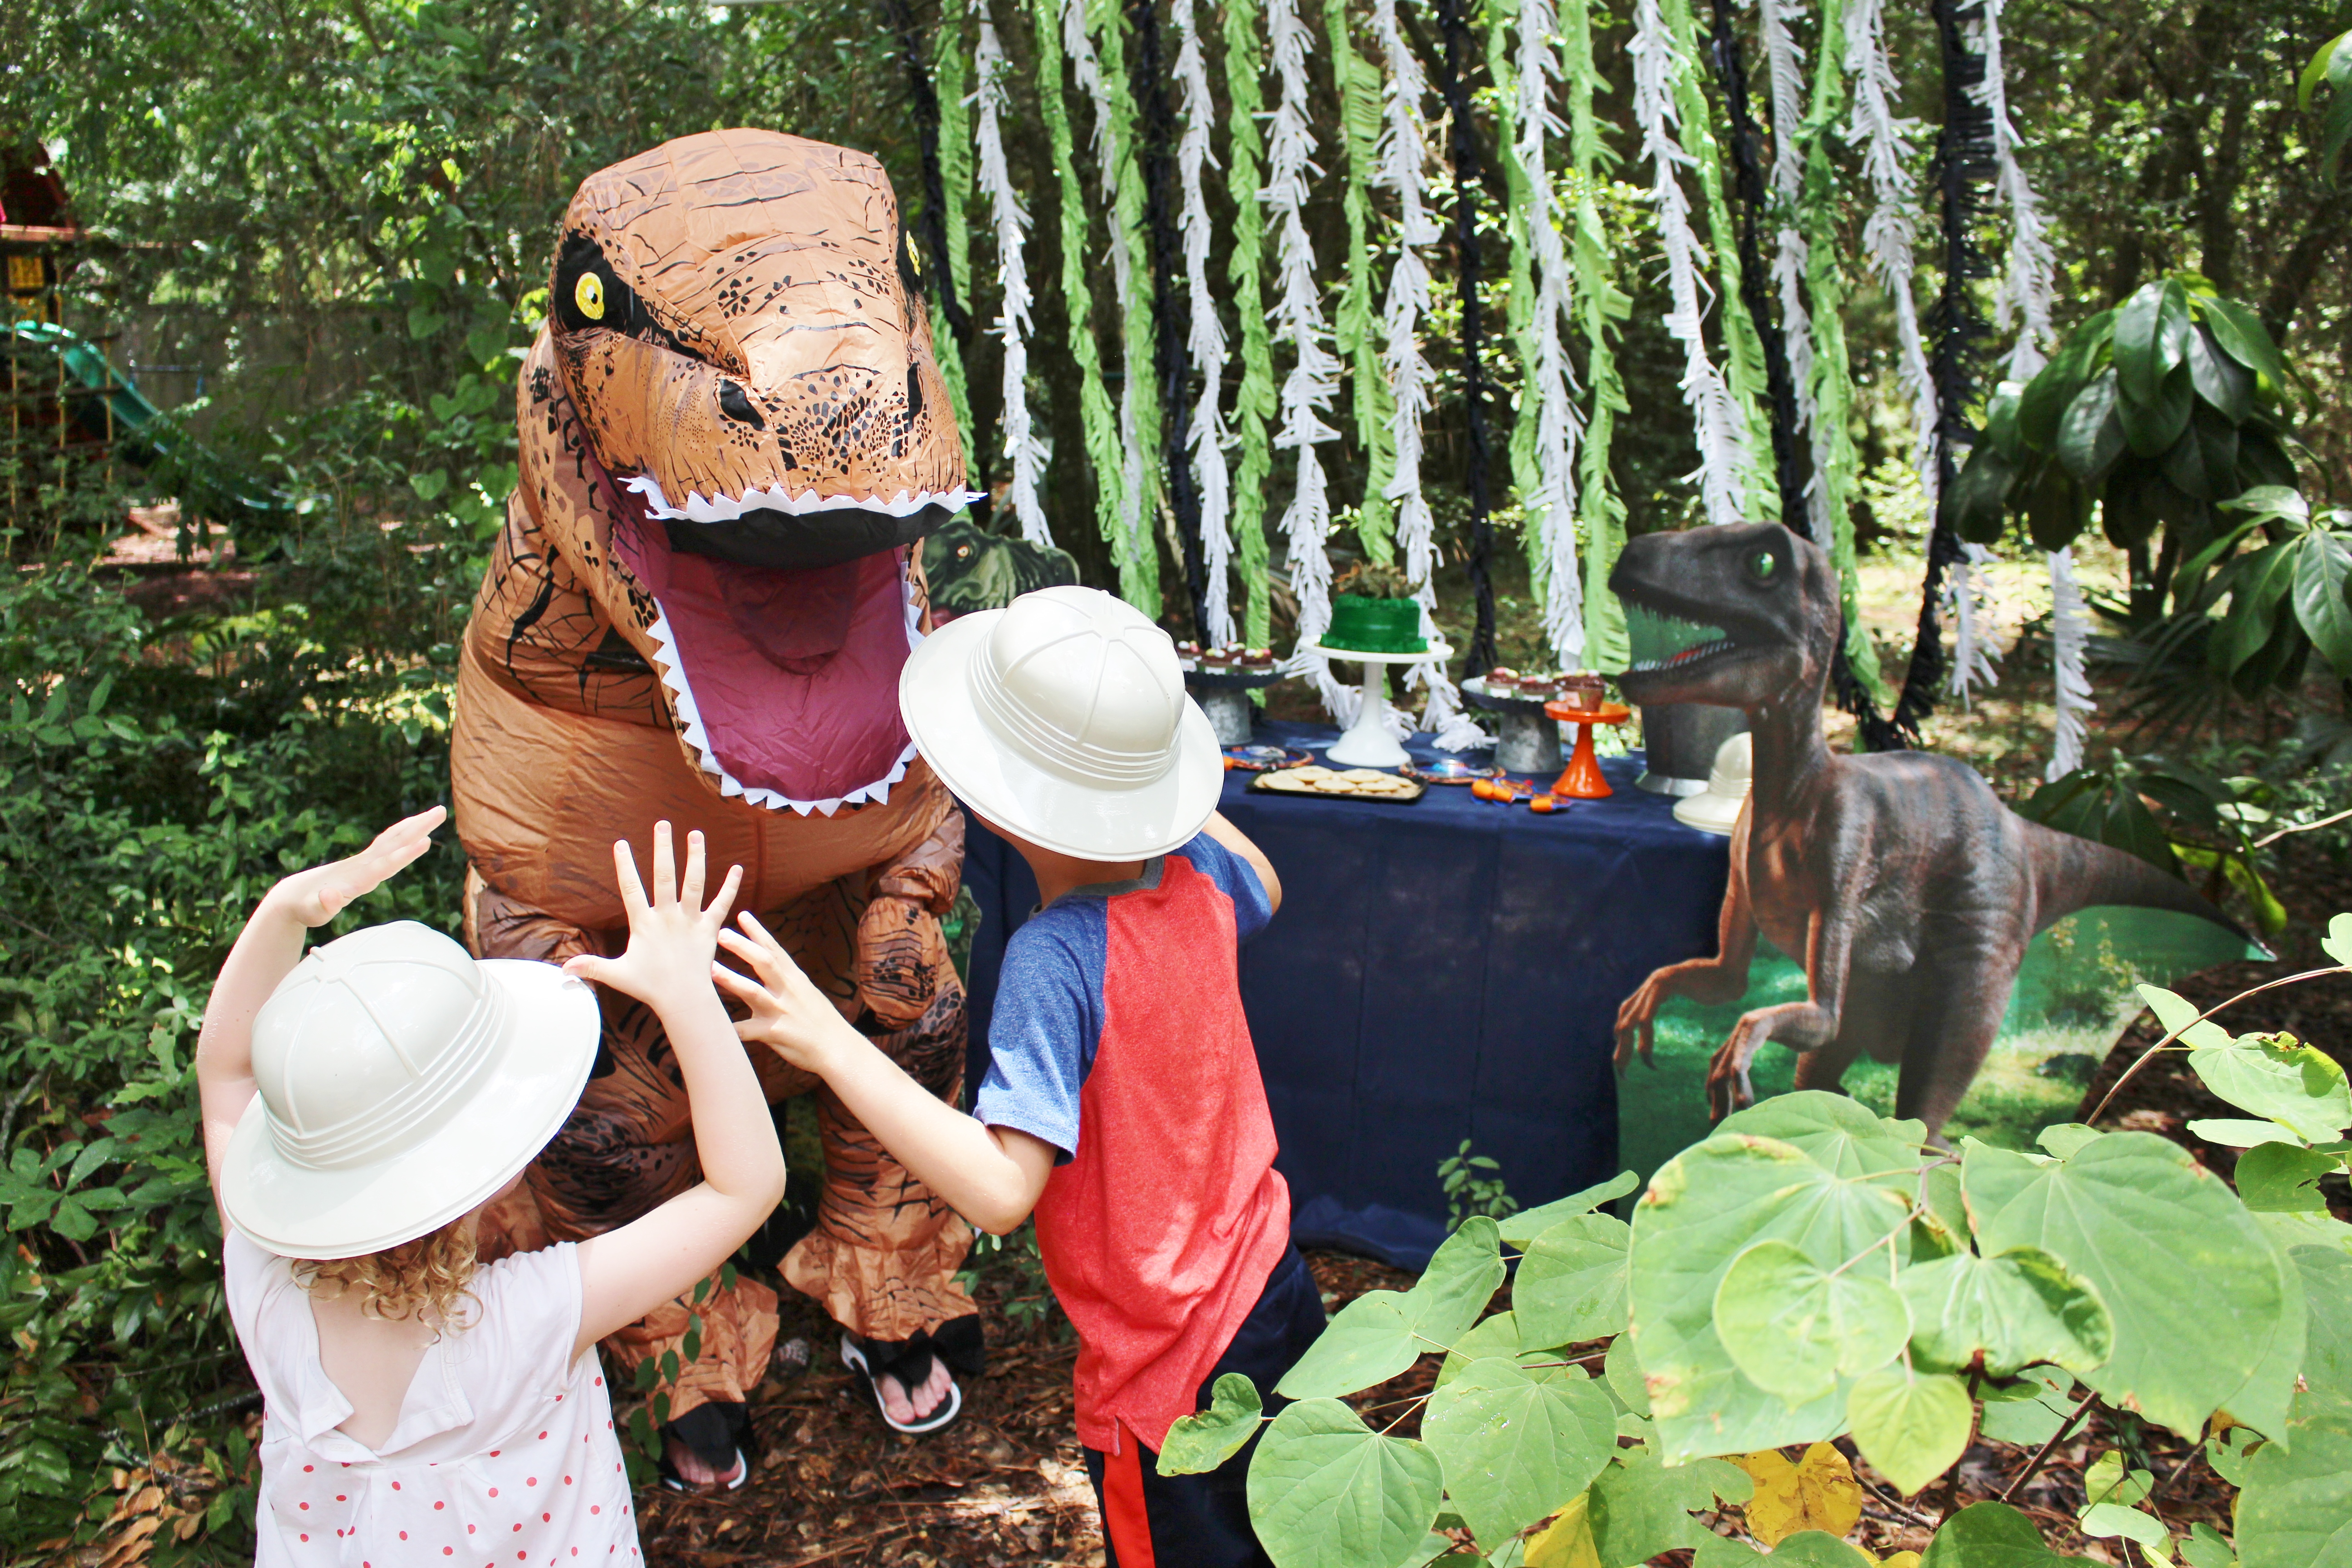 Jurassic World Dinosaur Party Ideas - Crowning Details